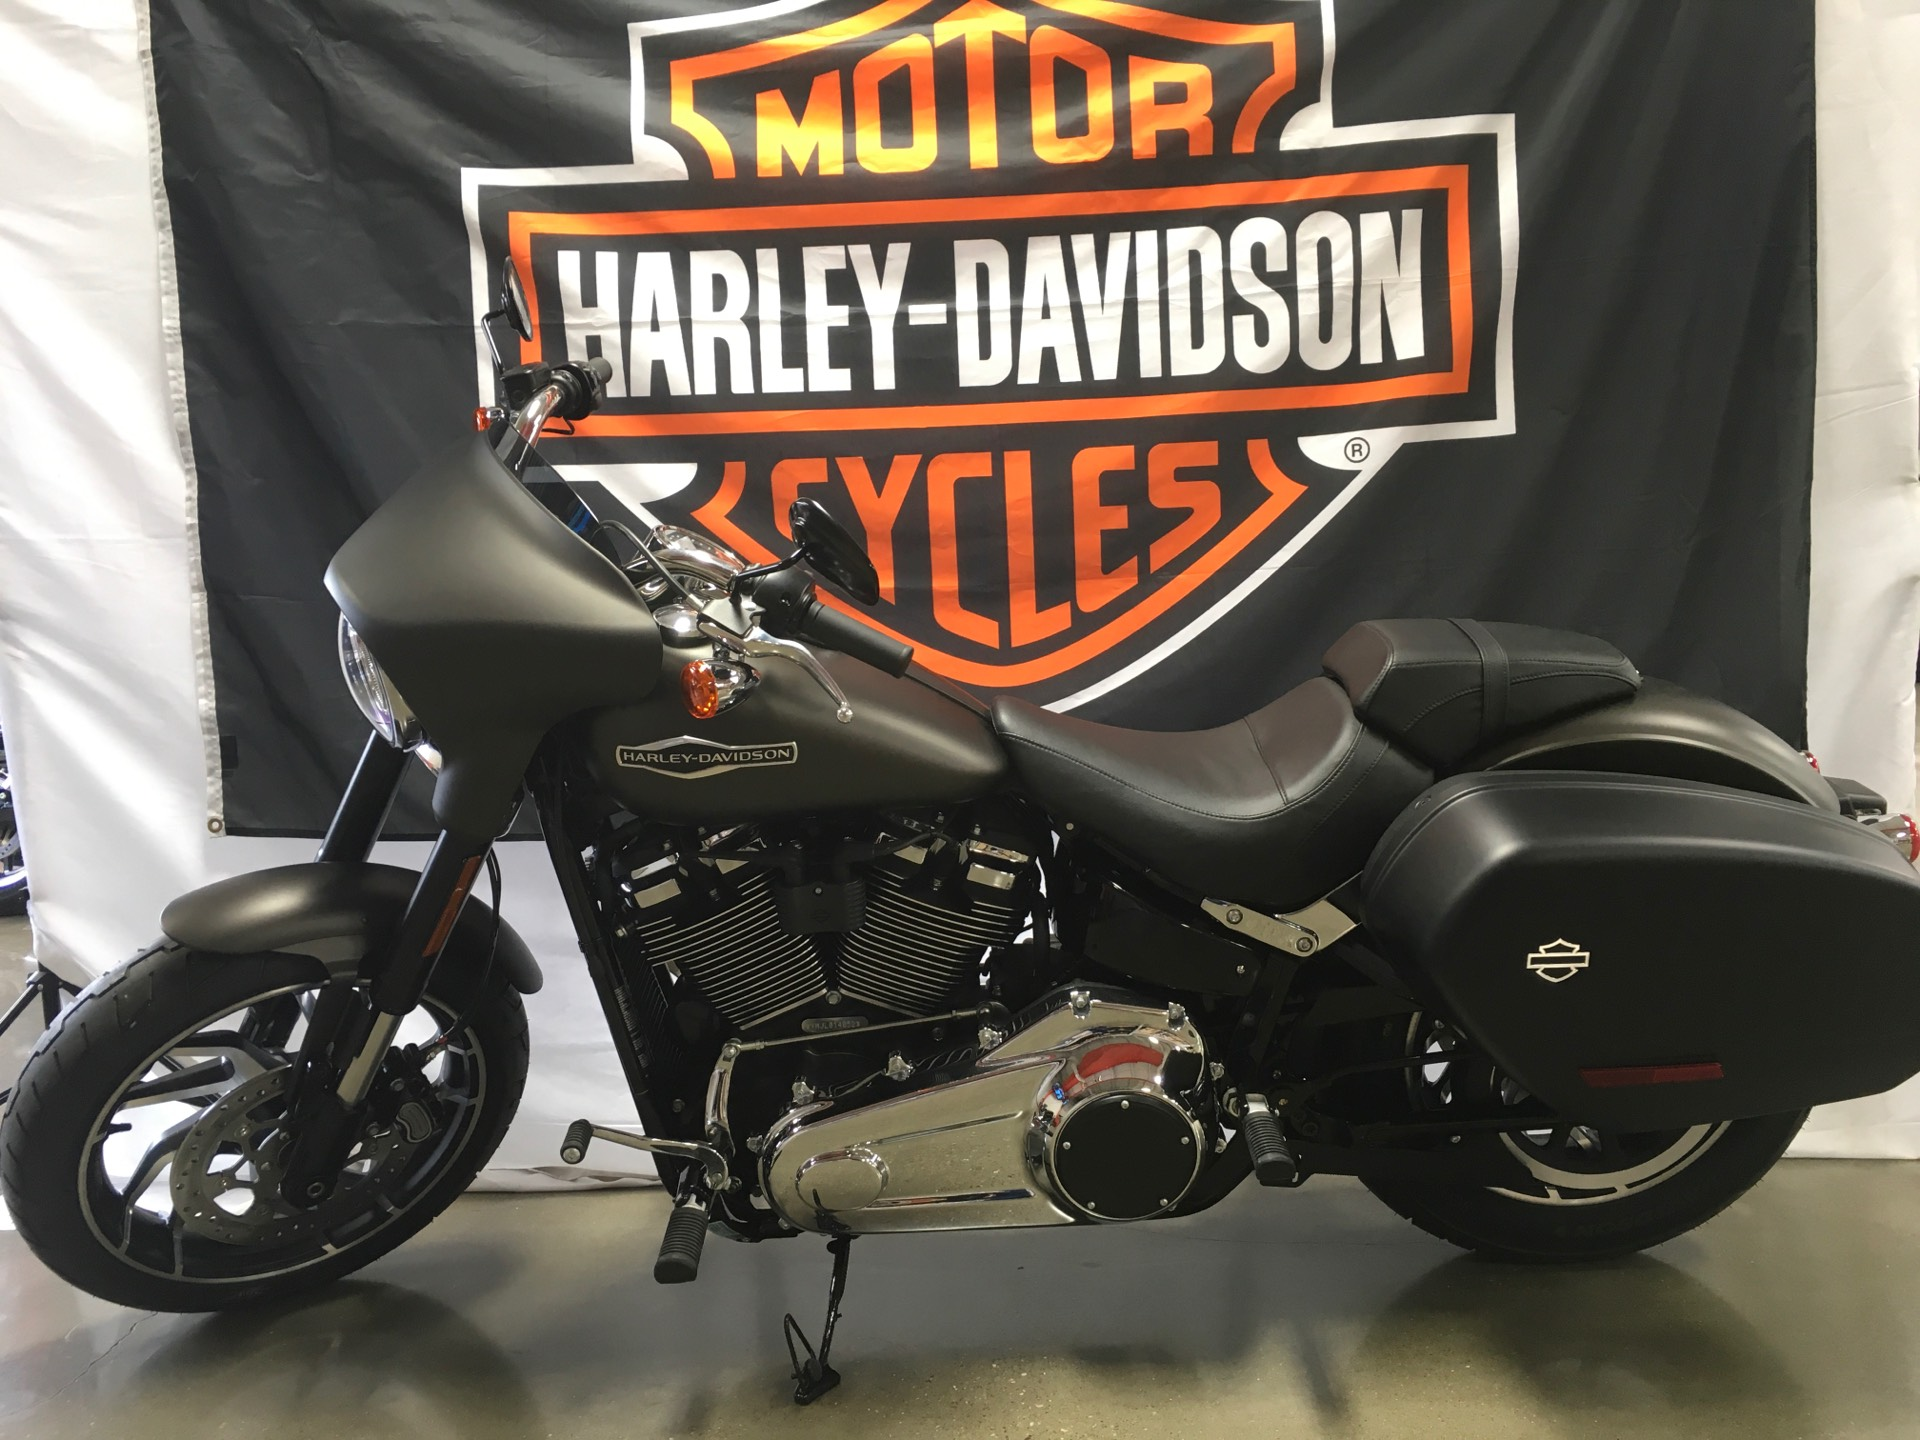 2020 Harley-Davidson FLSB in Belmont, Ohio - Photo 2